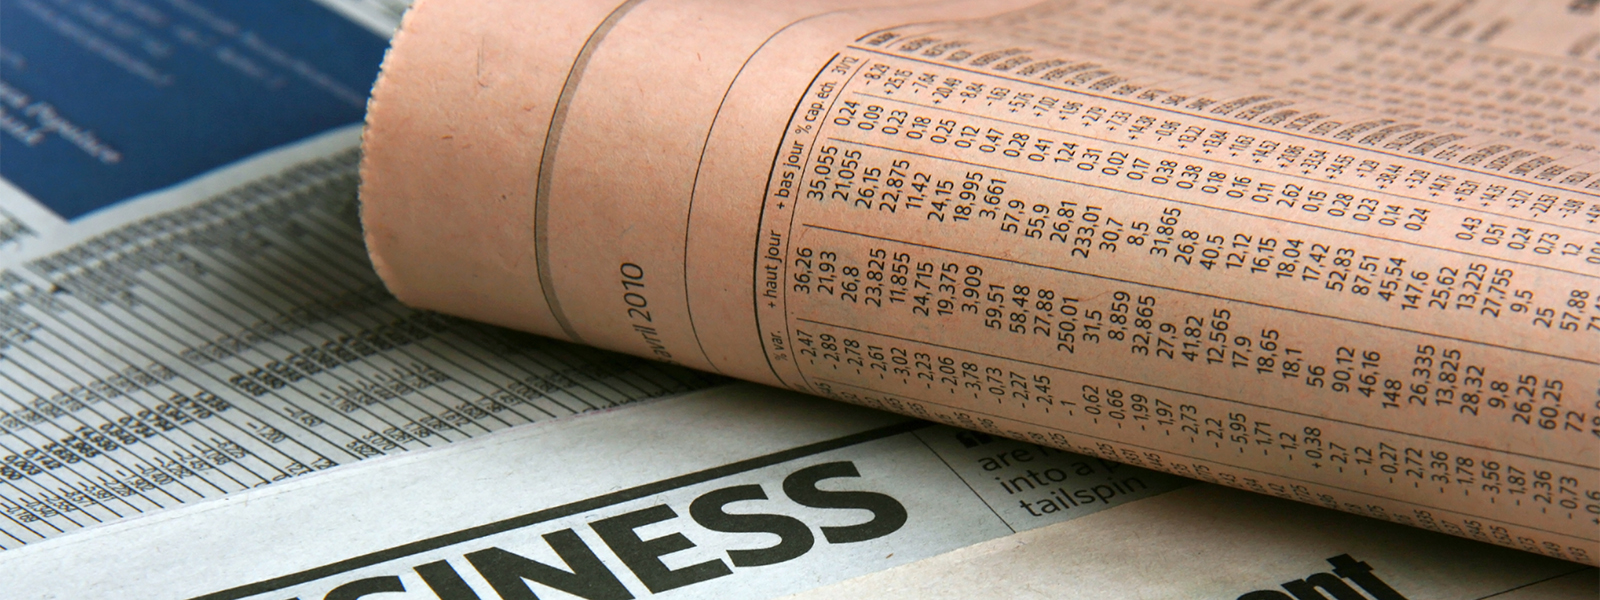 Finance newspapers